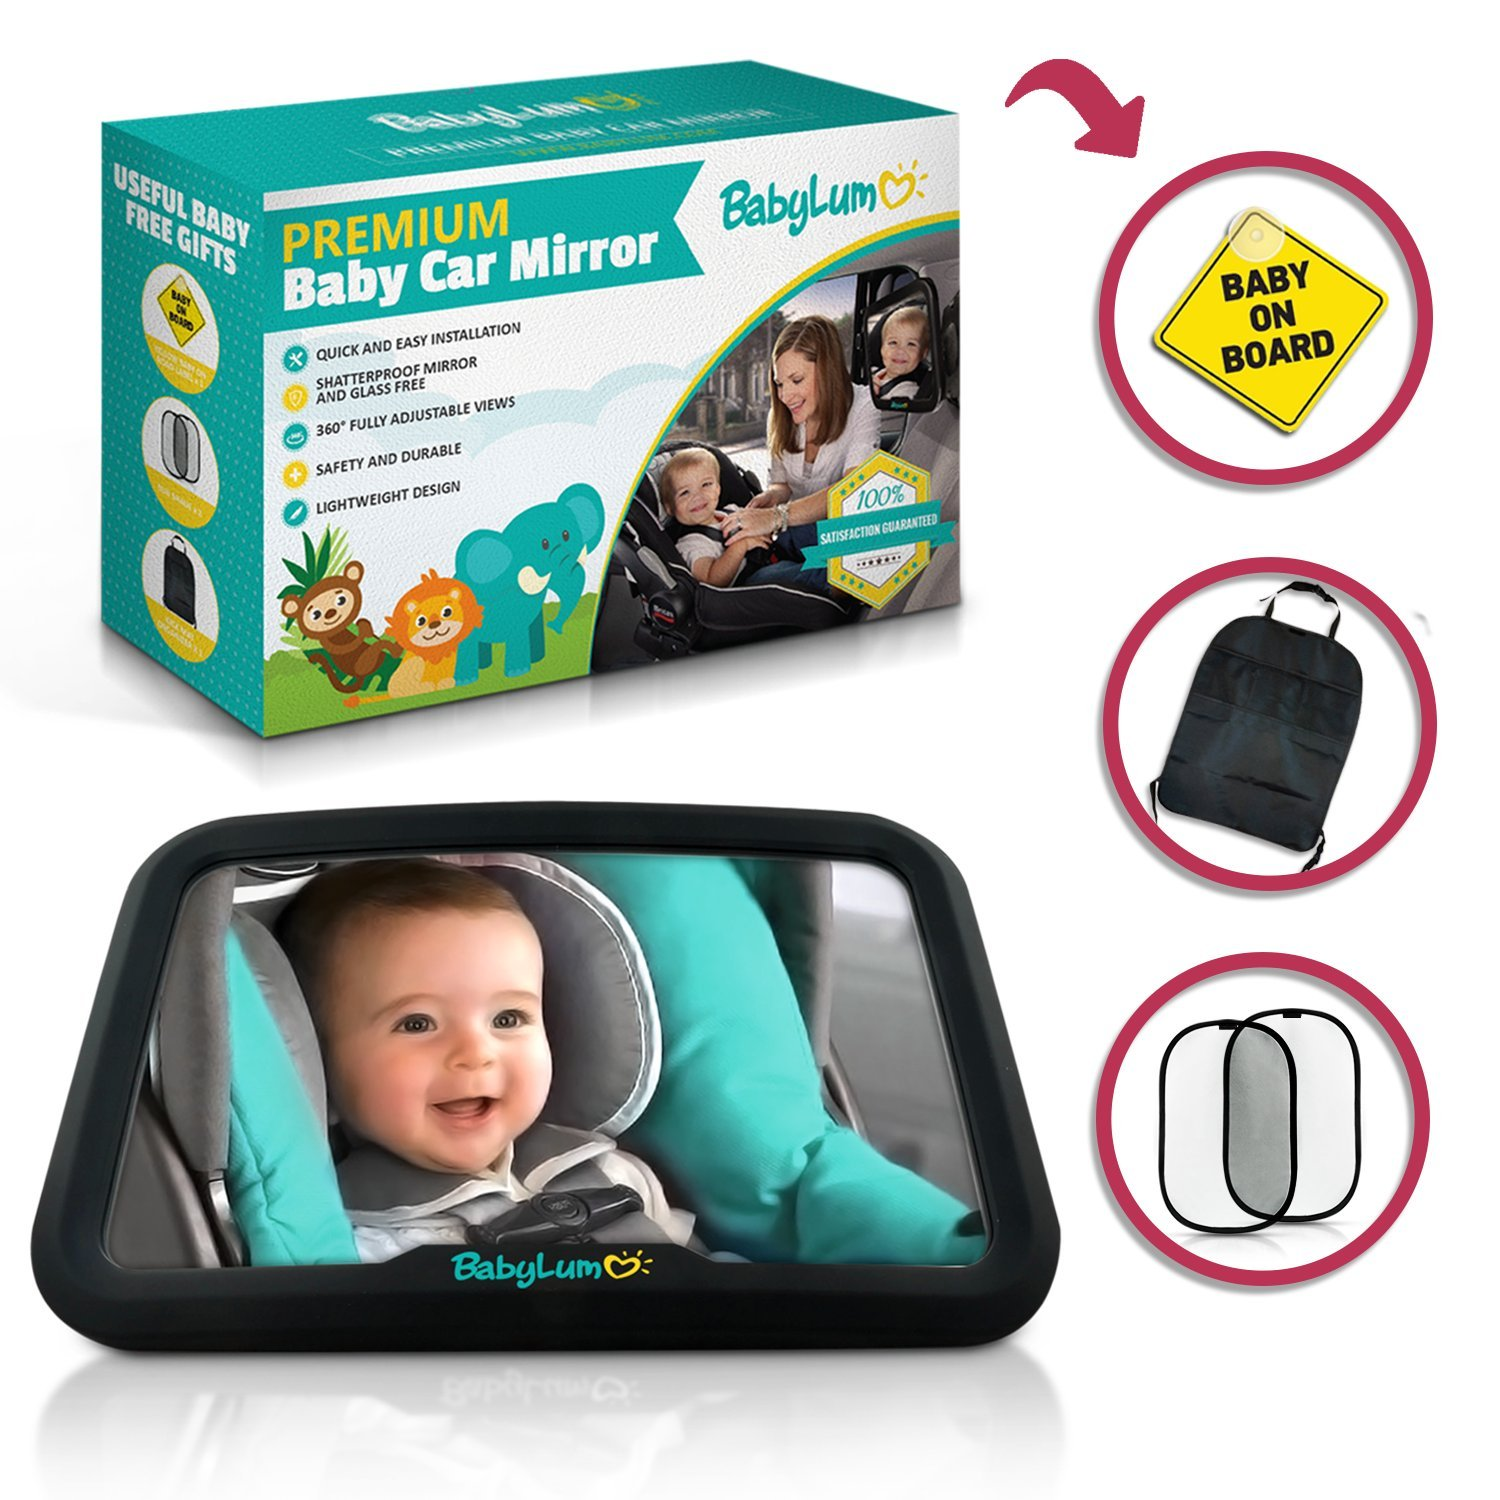 BabyLum Baby Backseat Car Mirror - View Infant in Rear Facing Carseat, Crash Safe, Crystal Clear Large Shatterproof Mirror, Include 1 Baby On Board Sign, Kick Mat, 2 Sun Shades